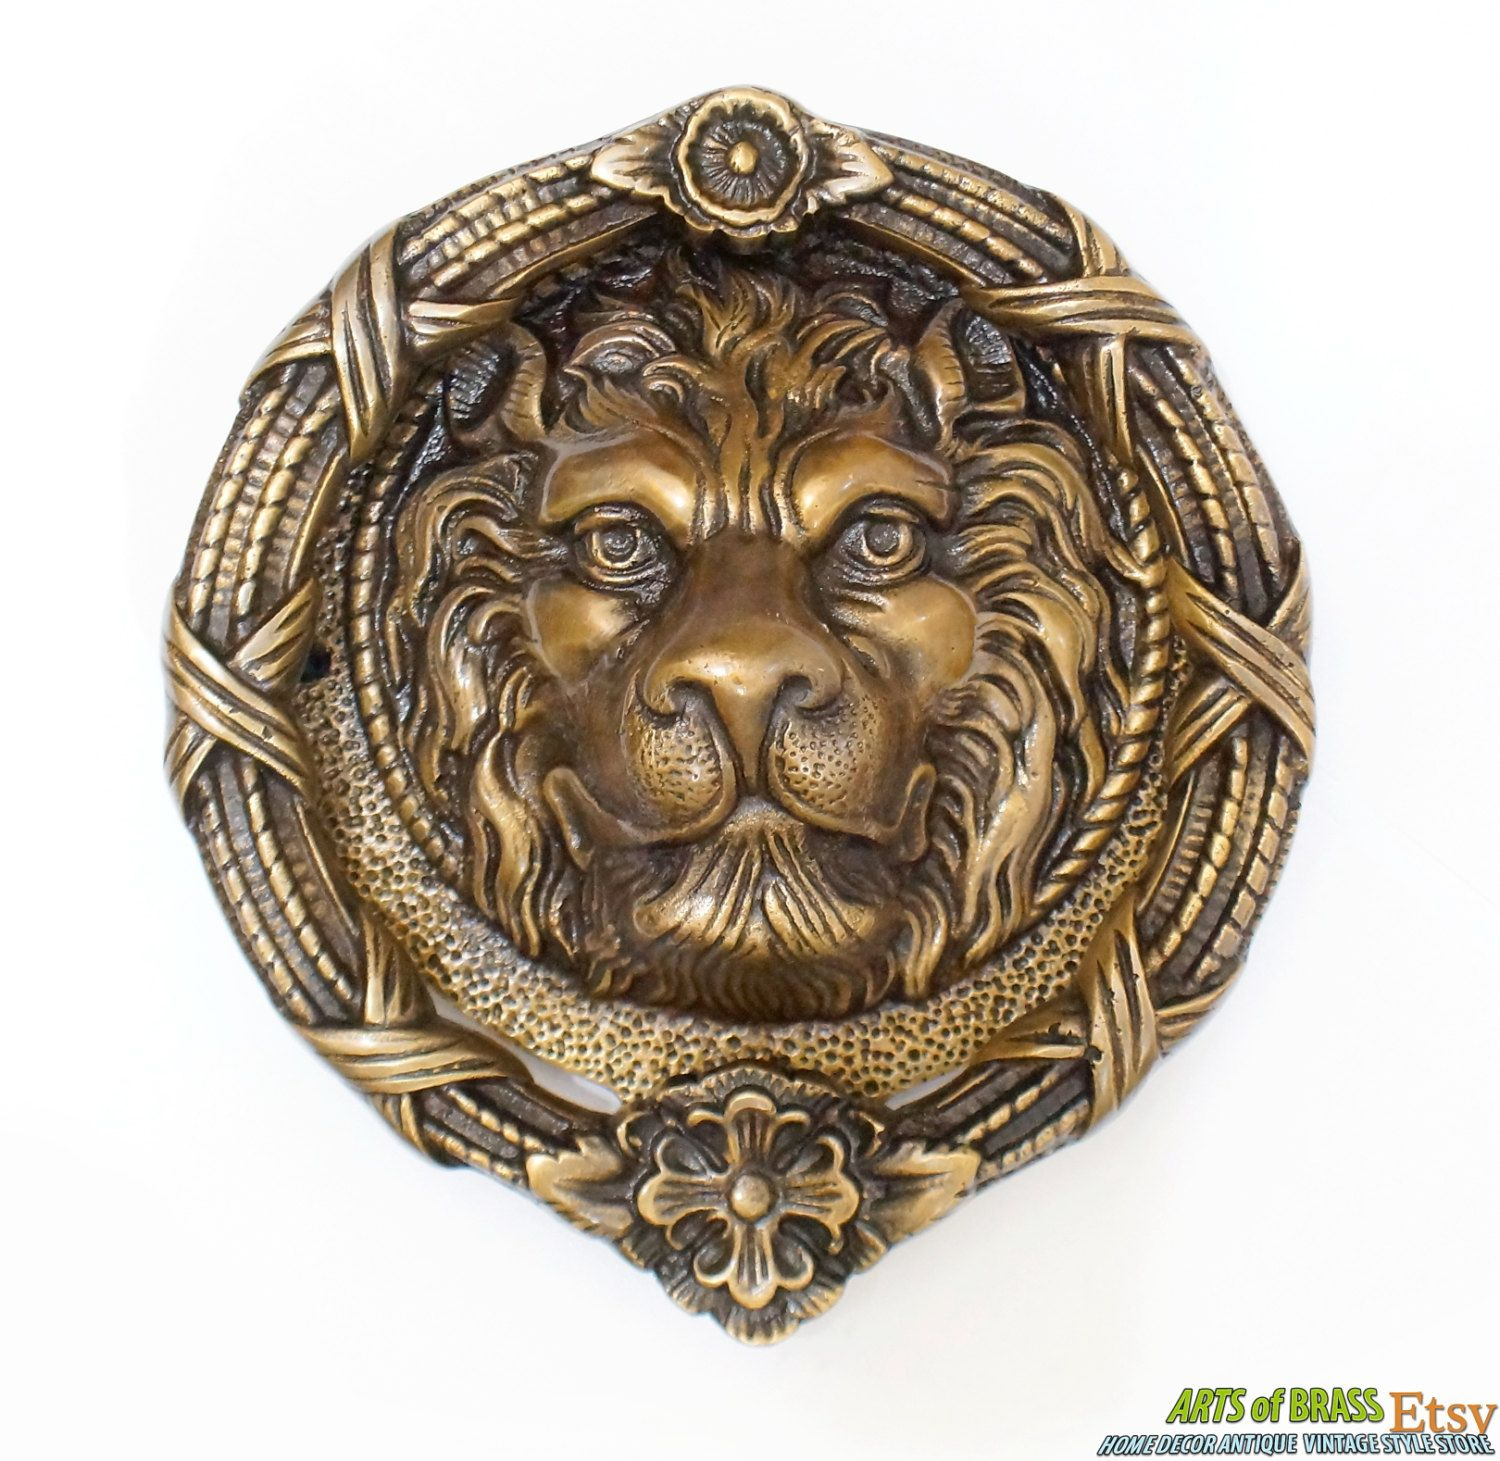 7 50 Inches Vintage Solid Brass Large Lion King Head Front Door Knocker With Flower Crown Front Door Knocker P158 In 2020